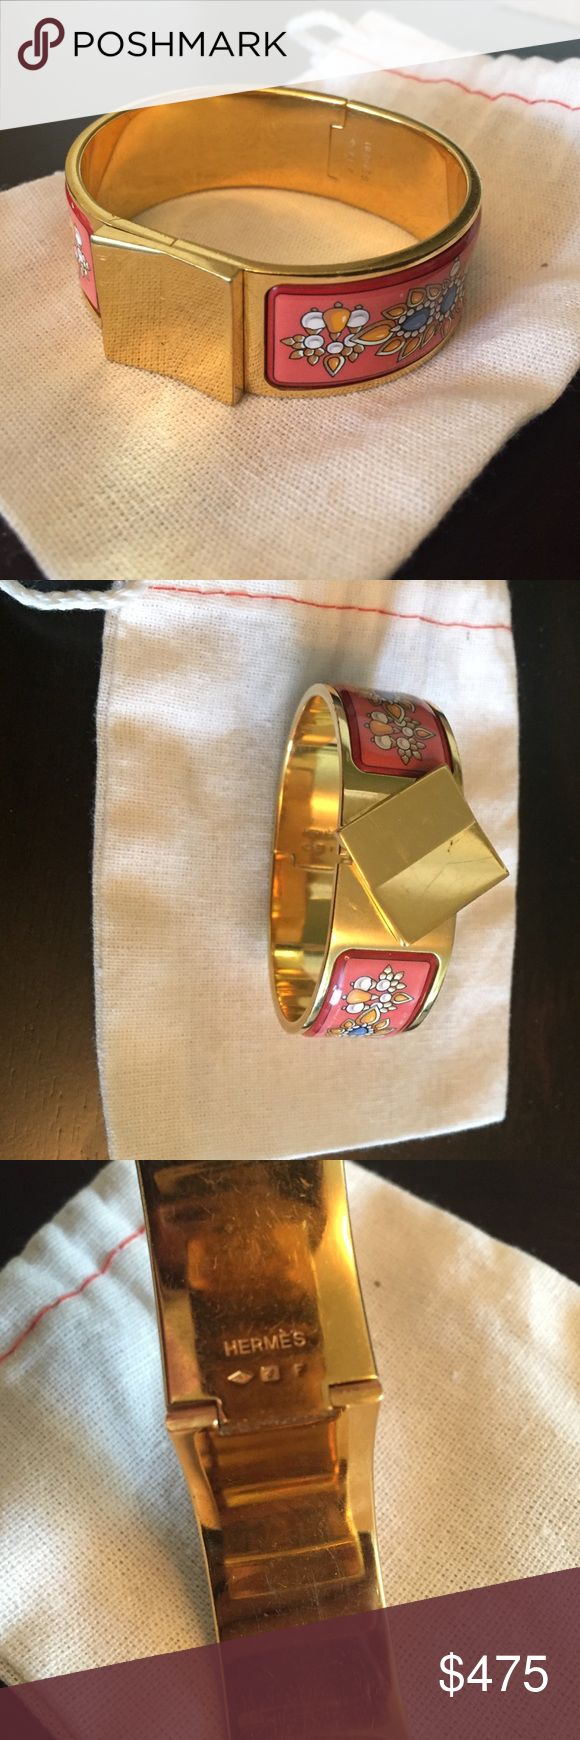 Hermes Wide Loquet Enamel Bracelet (GM) Gold-tone Hermes Wide Enamel Loquet Bracelet with coral floral motif print inlay and slide lock closure. Stamped F from 2002. Includes dustbag. In excellent pre-owned condition, minor scratches - 9/10. Hermes Jewelry Bracelets